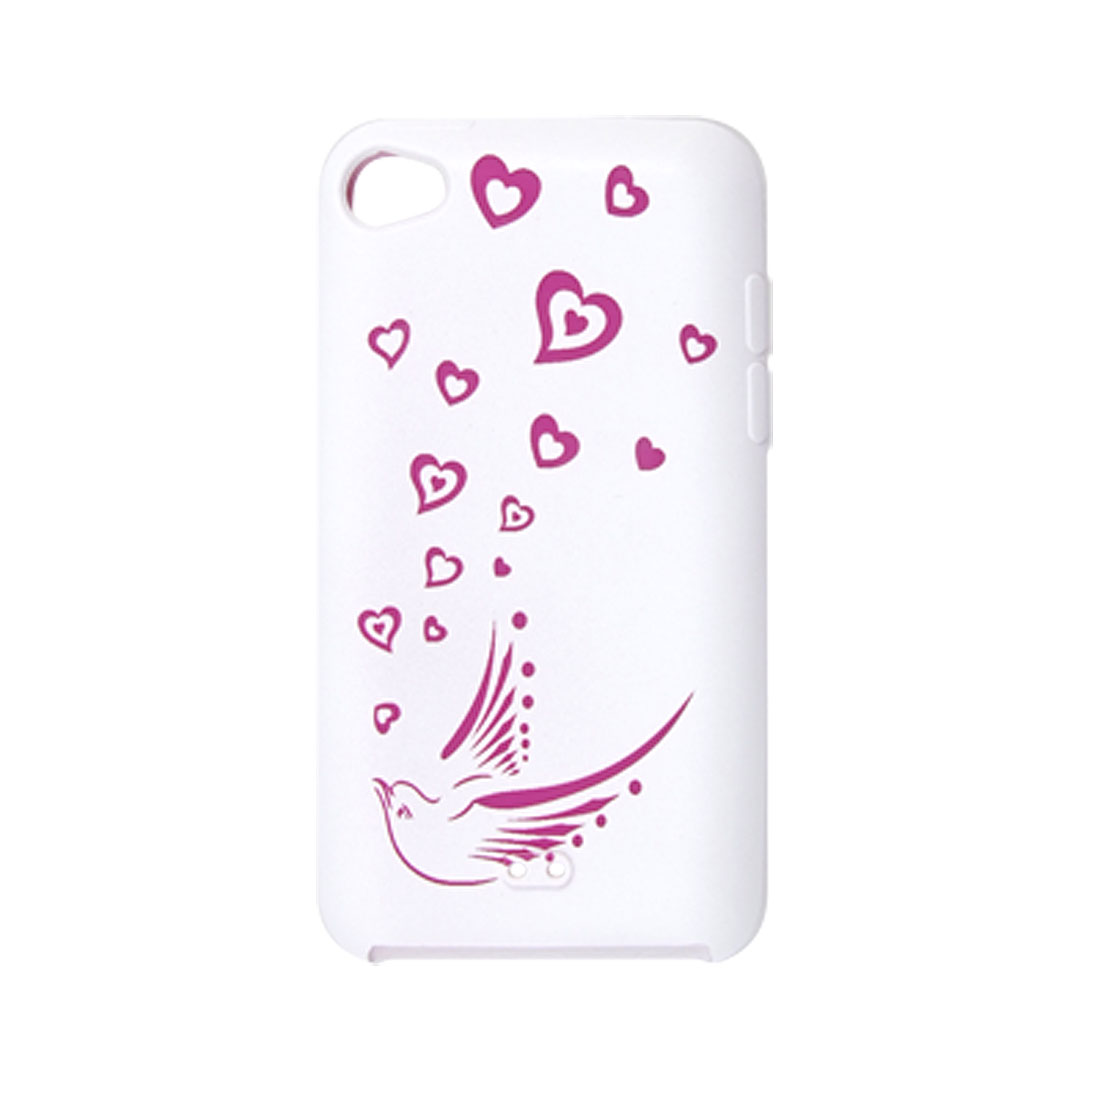 Heart Bird Print White Silicone Skin Case for iPod Touch 4G